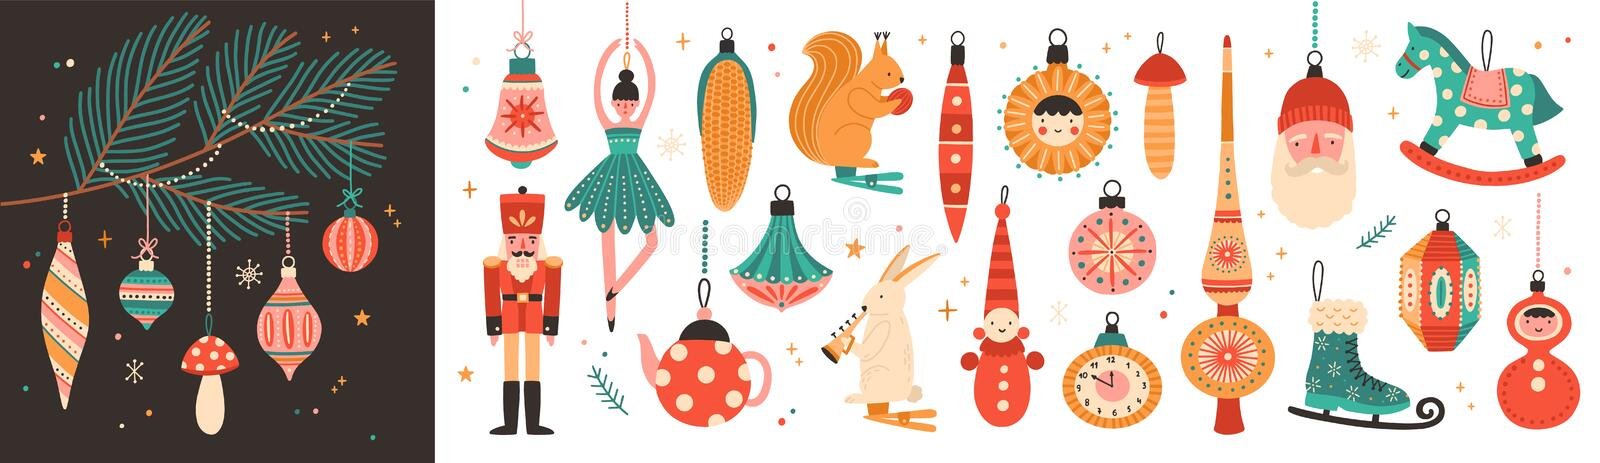 Collection of beautiful baubles and decorations for Christmas tree. Set of holiday ornaments. Figures of animals, Santa stock illustration